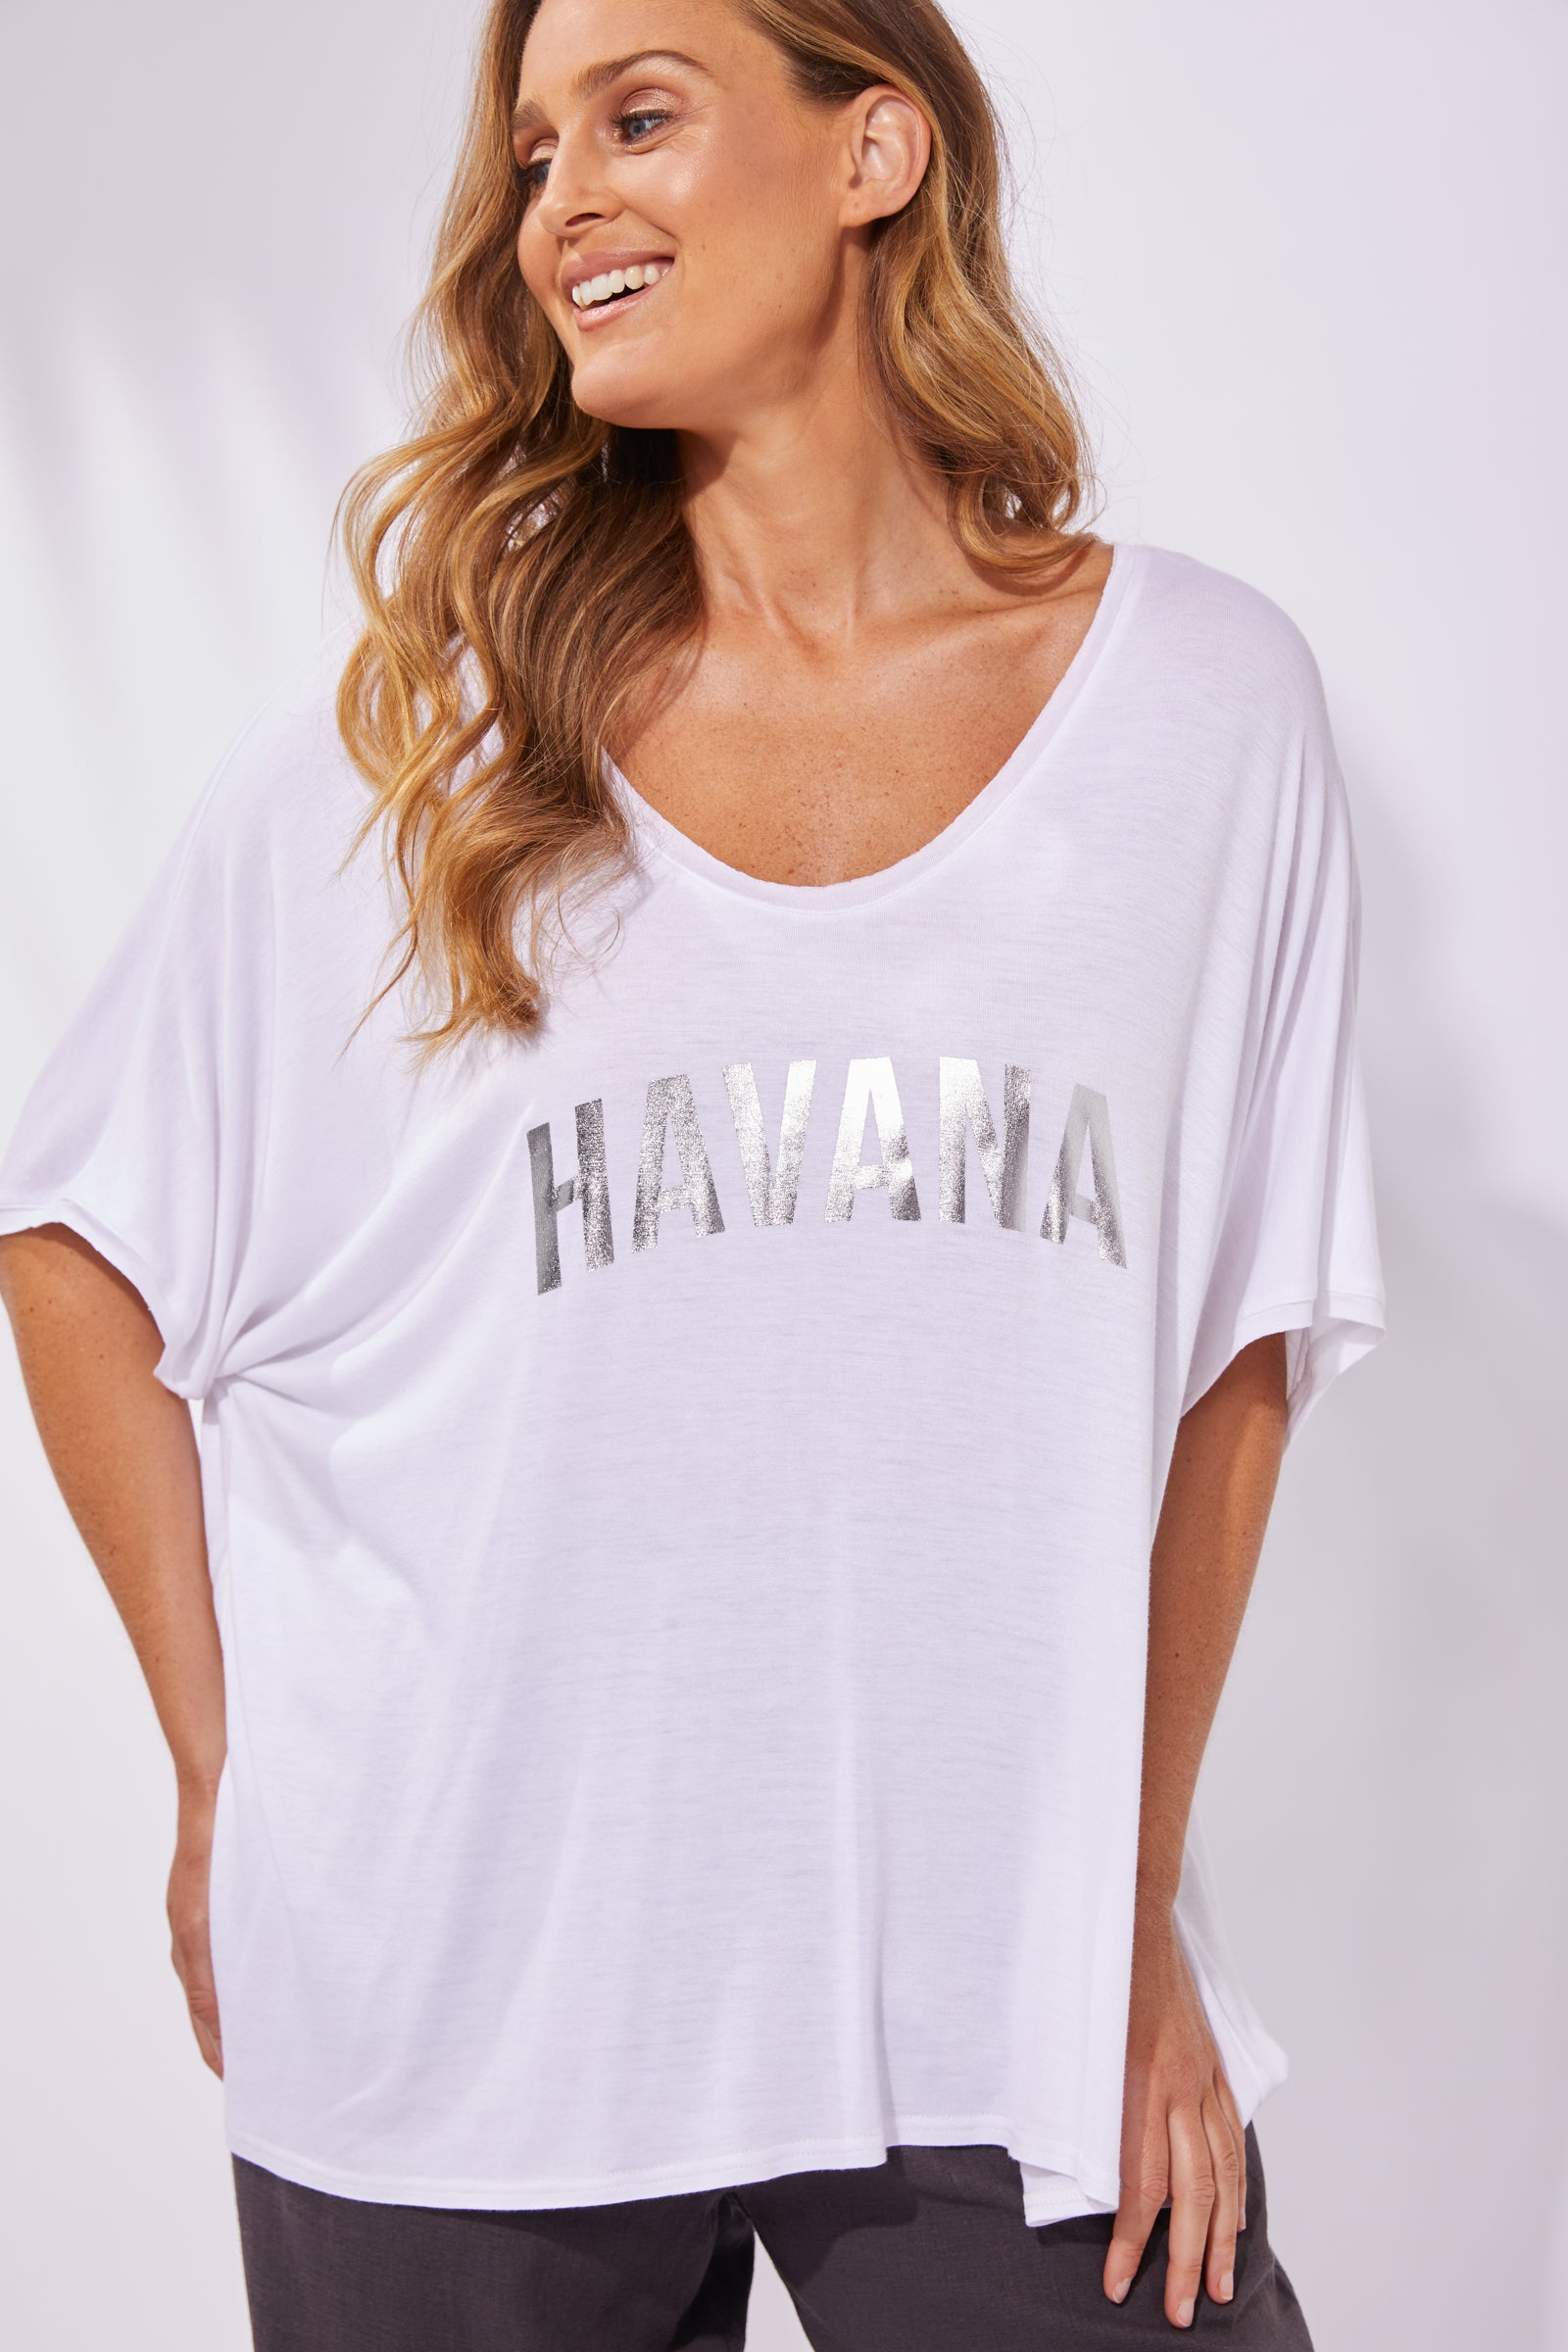 Havana Tshirt - Salt - The Haven Co